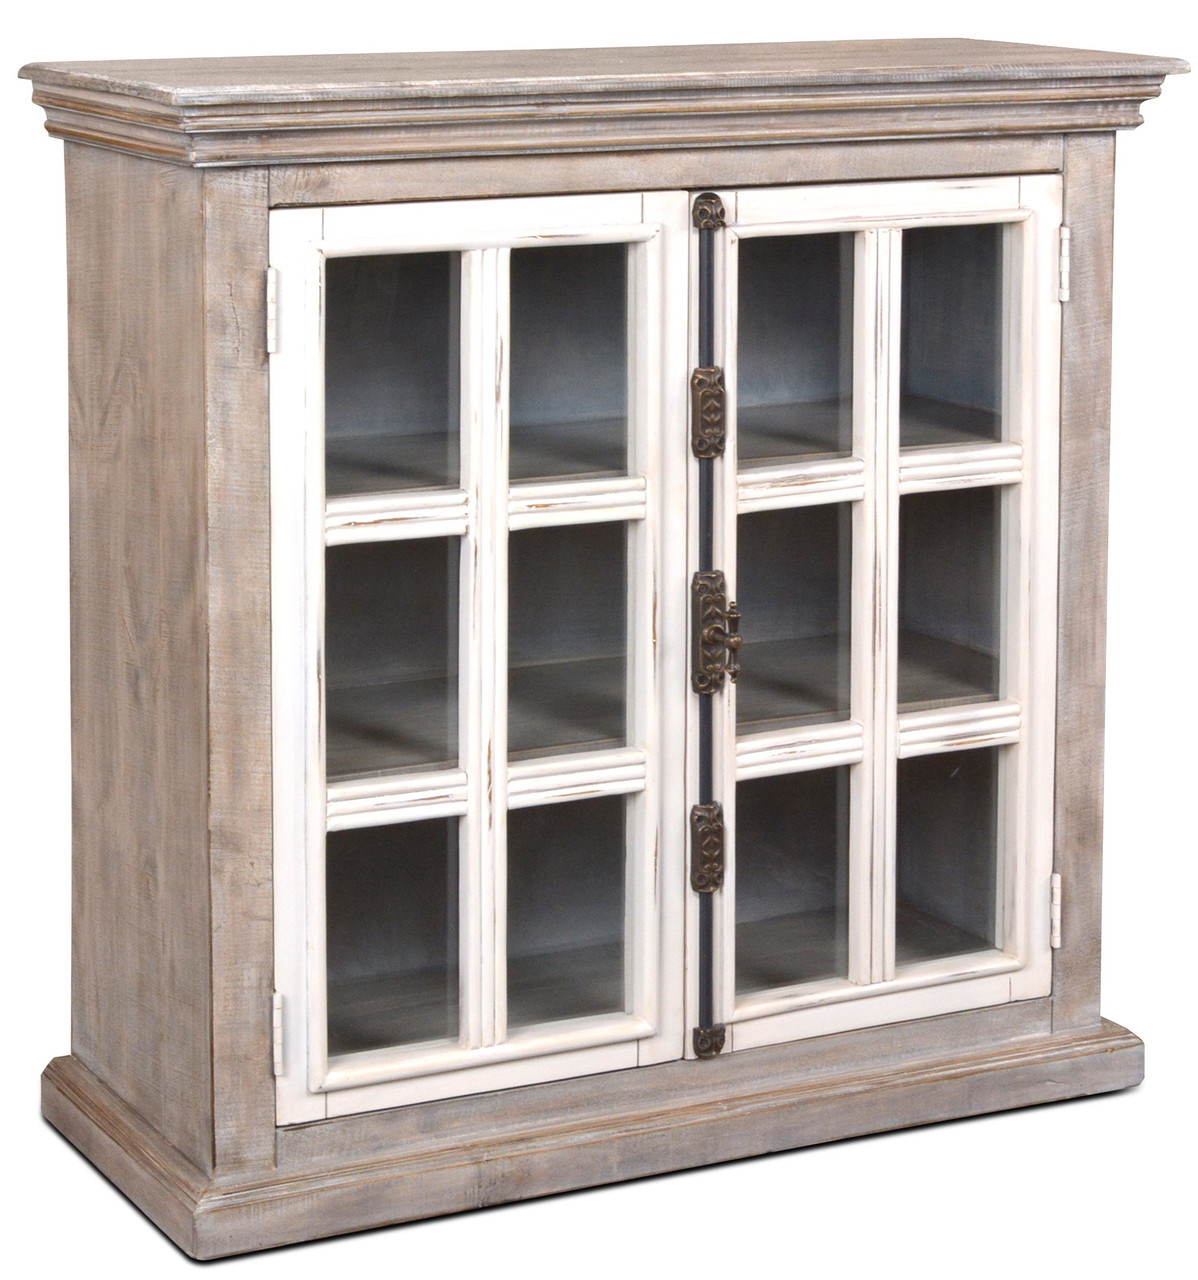 The Horizon Home Florence 41 Curio Cabinet Sold At Cramer S Furniture Serving Ellensburg And Omak Wa And Surrounding Areas